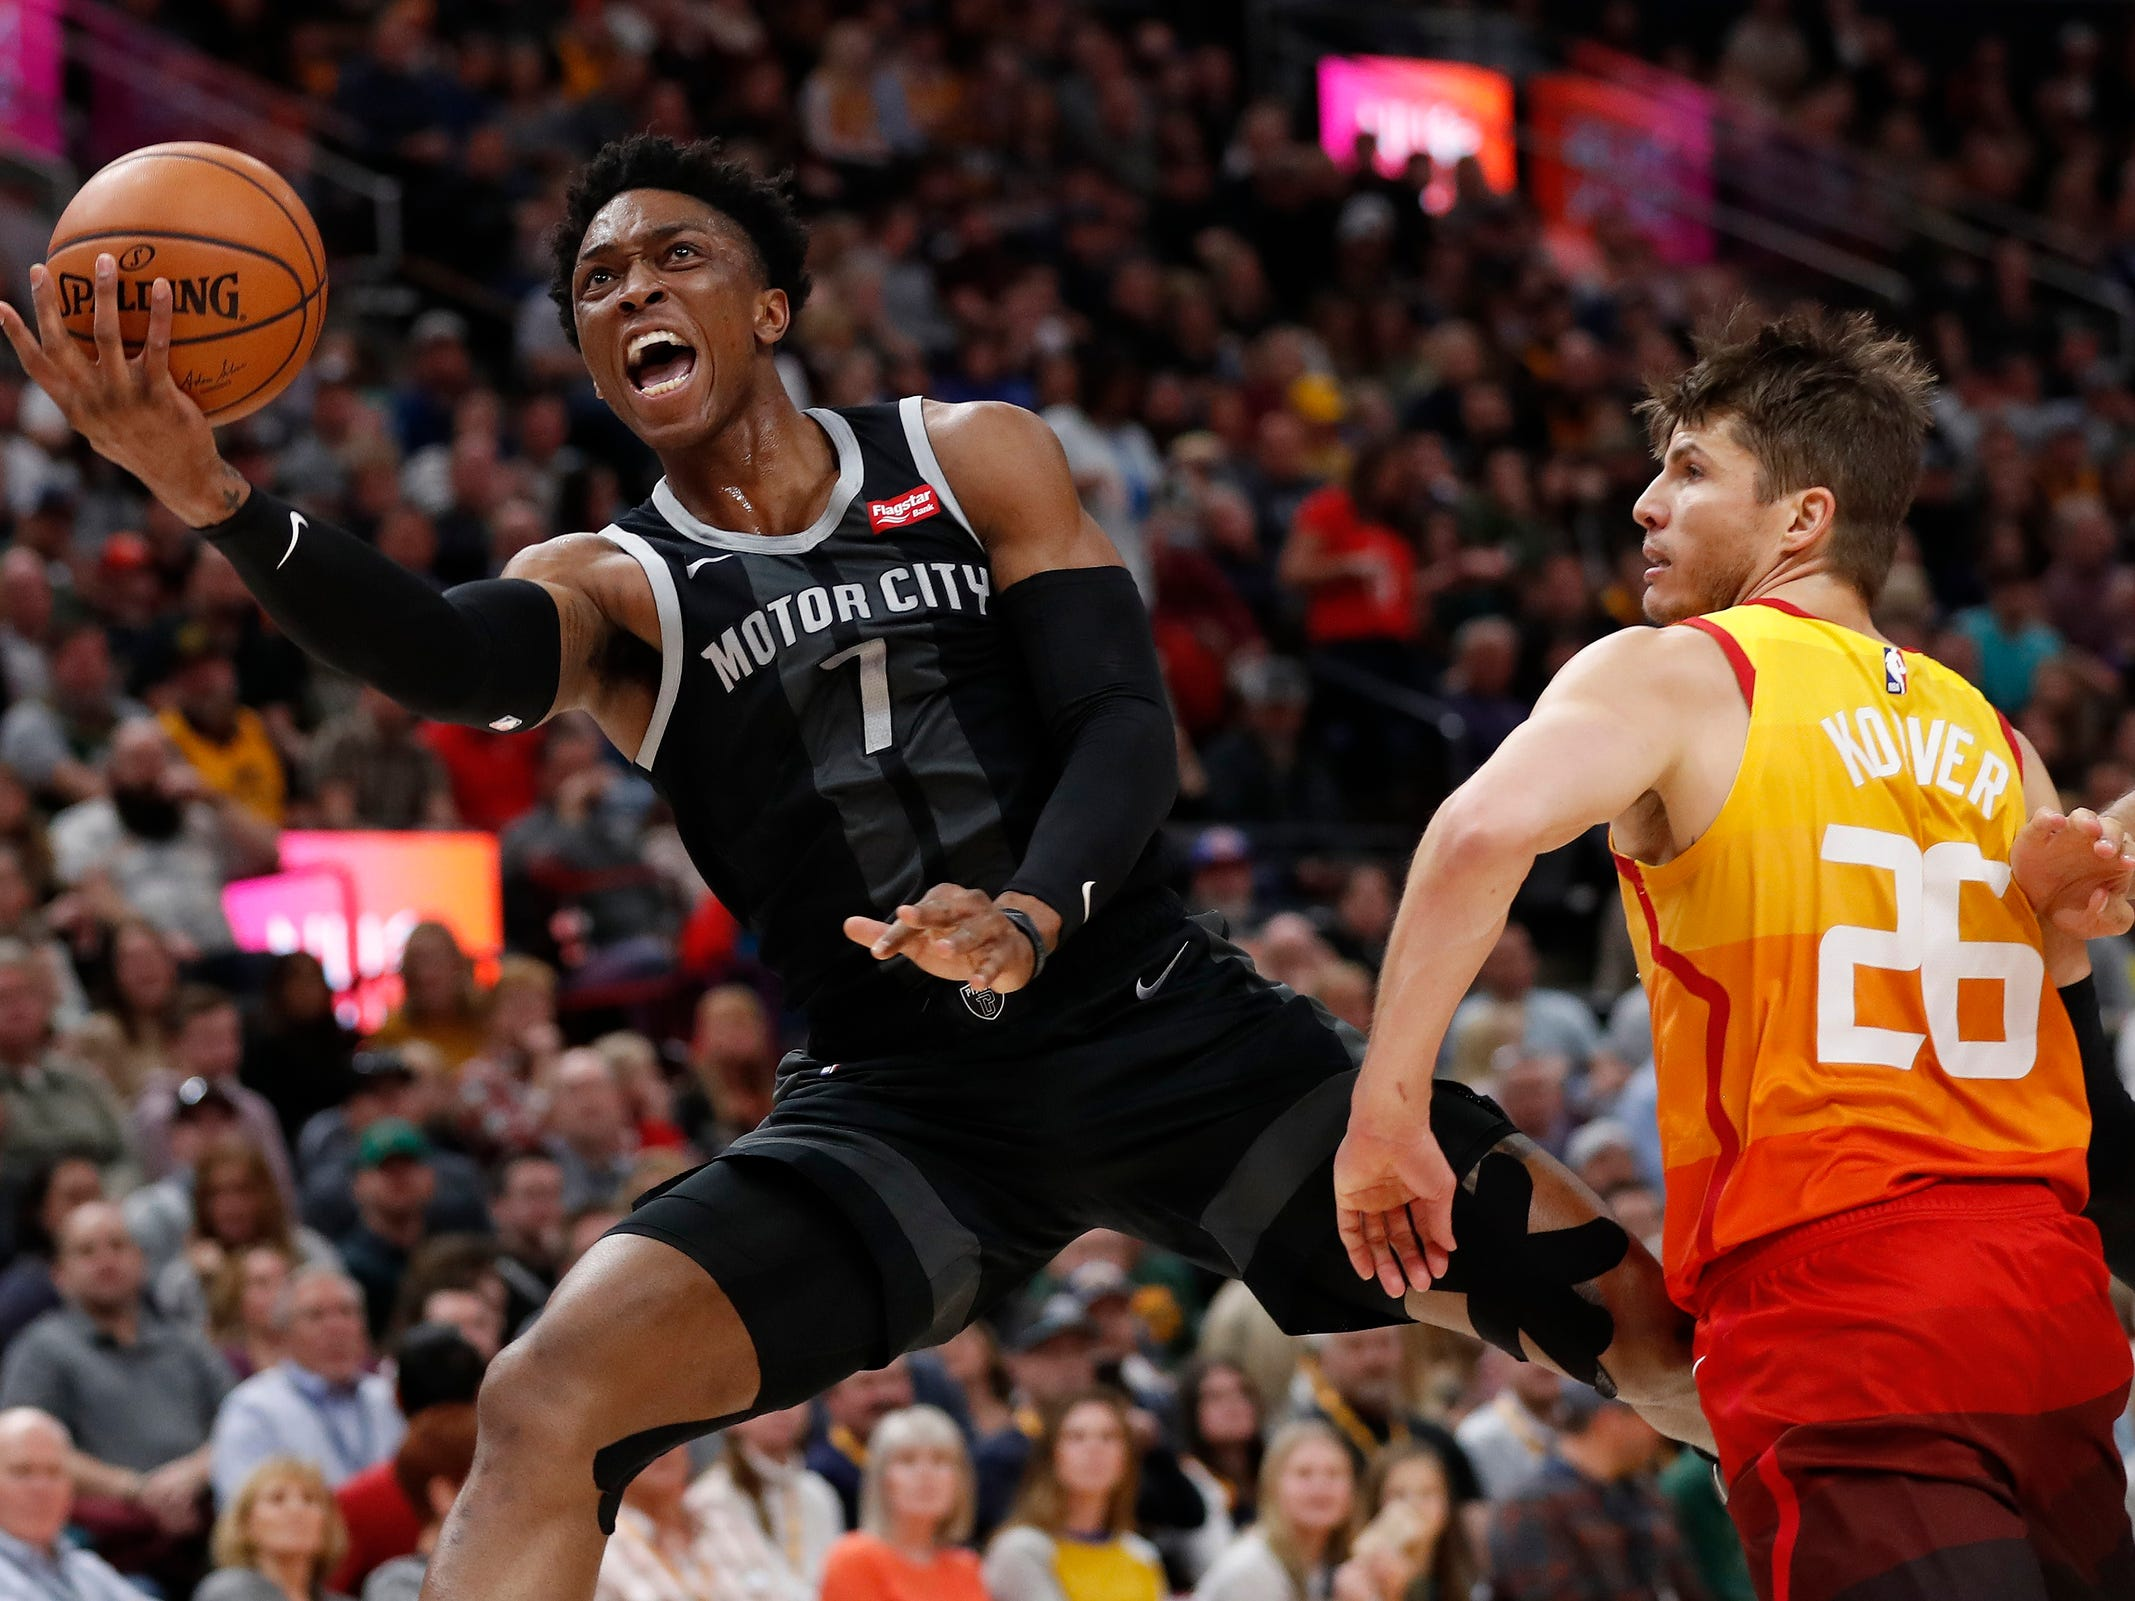 Pistons guard Reggie Jackson drives to the hoop against Jazz guard Kyle Korver in the second quarter of the 100-94 loss to the Jazz on Monday, Jan. 14, 2019, in Salt Lake City.